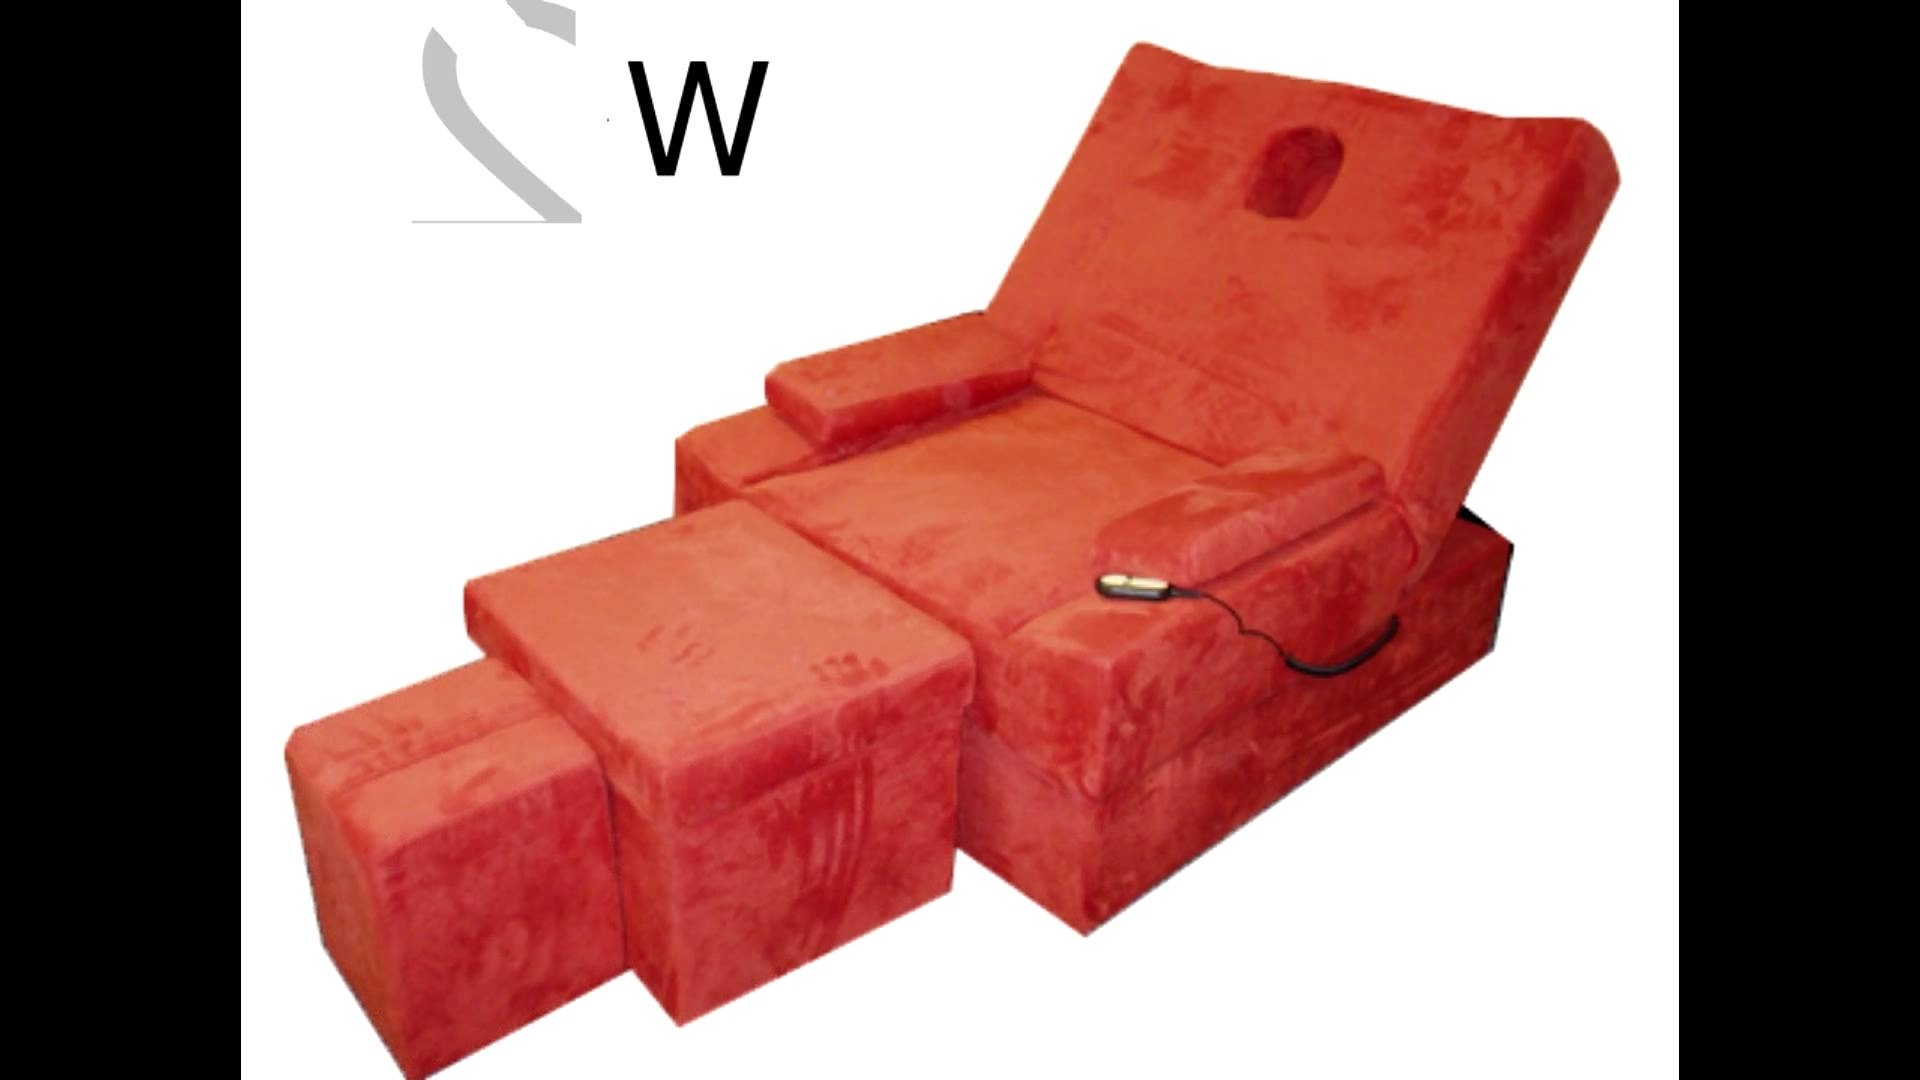 Electric Foot Massage Sofa Set 电动足浴沙发  Youtube Throughout Preferred Foot Massage Sofas (View 1 of 20)